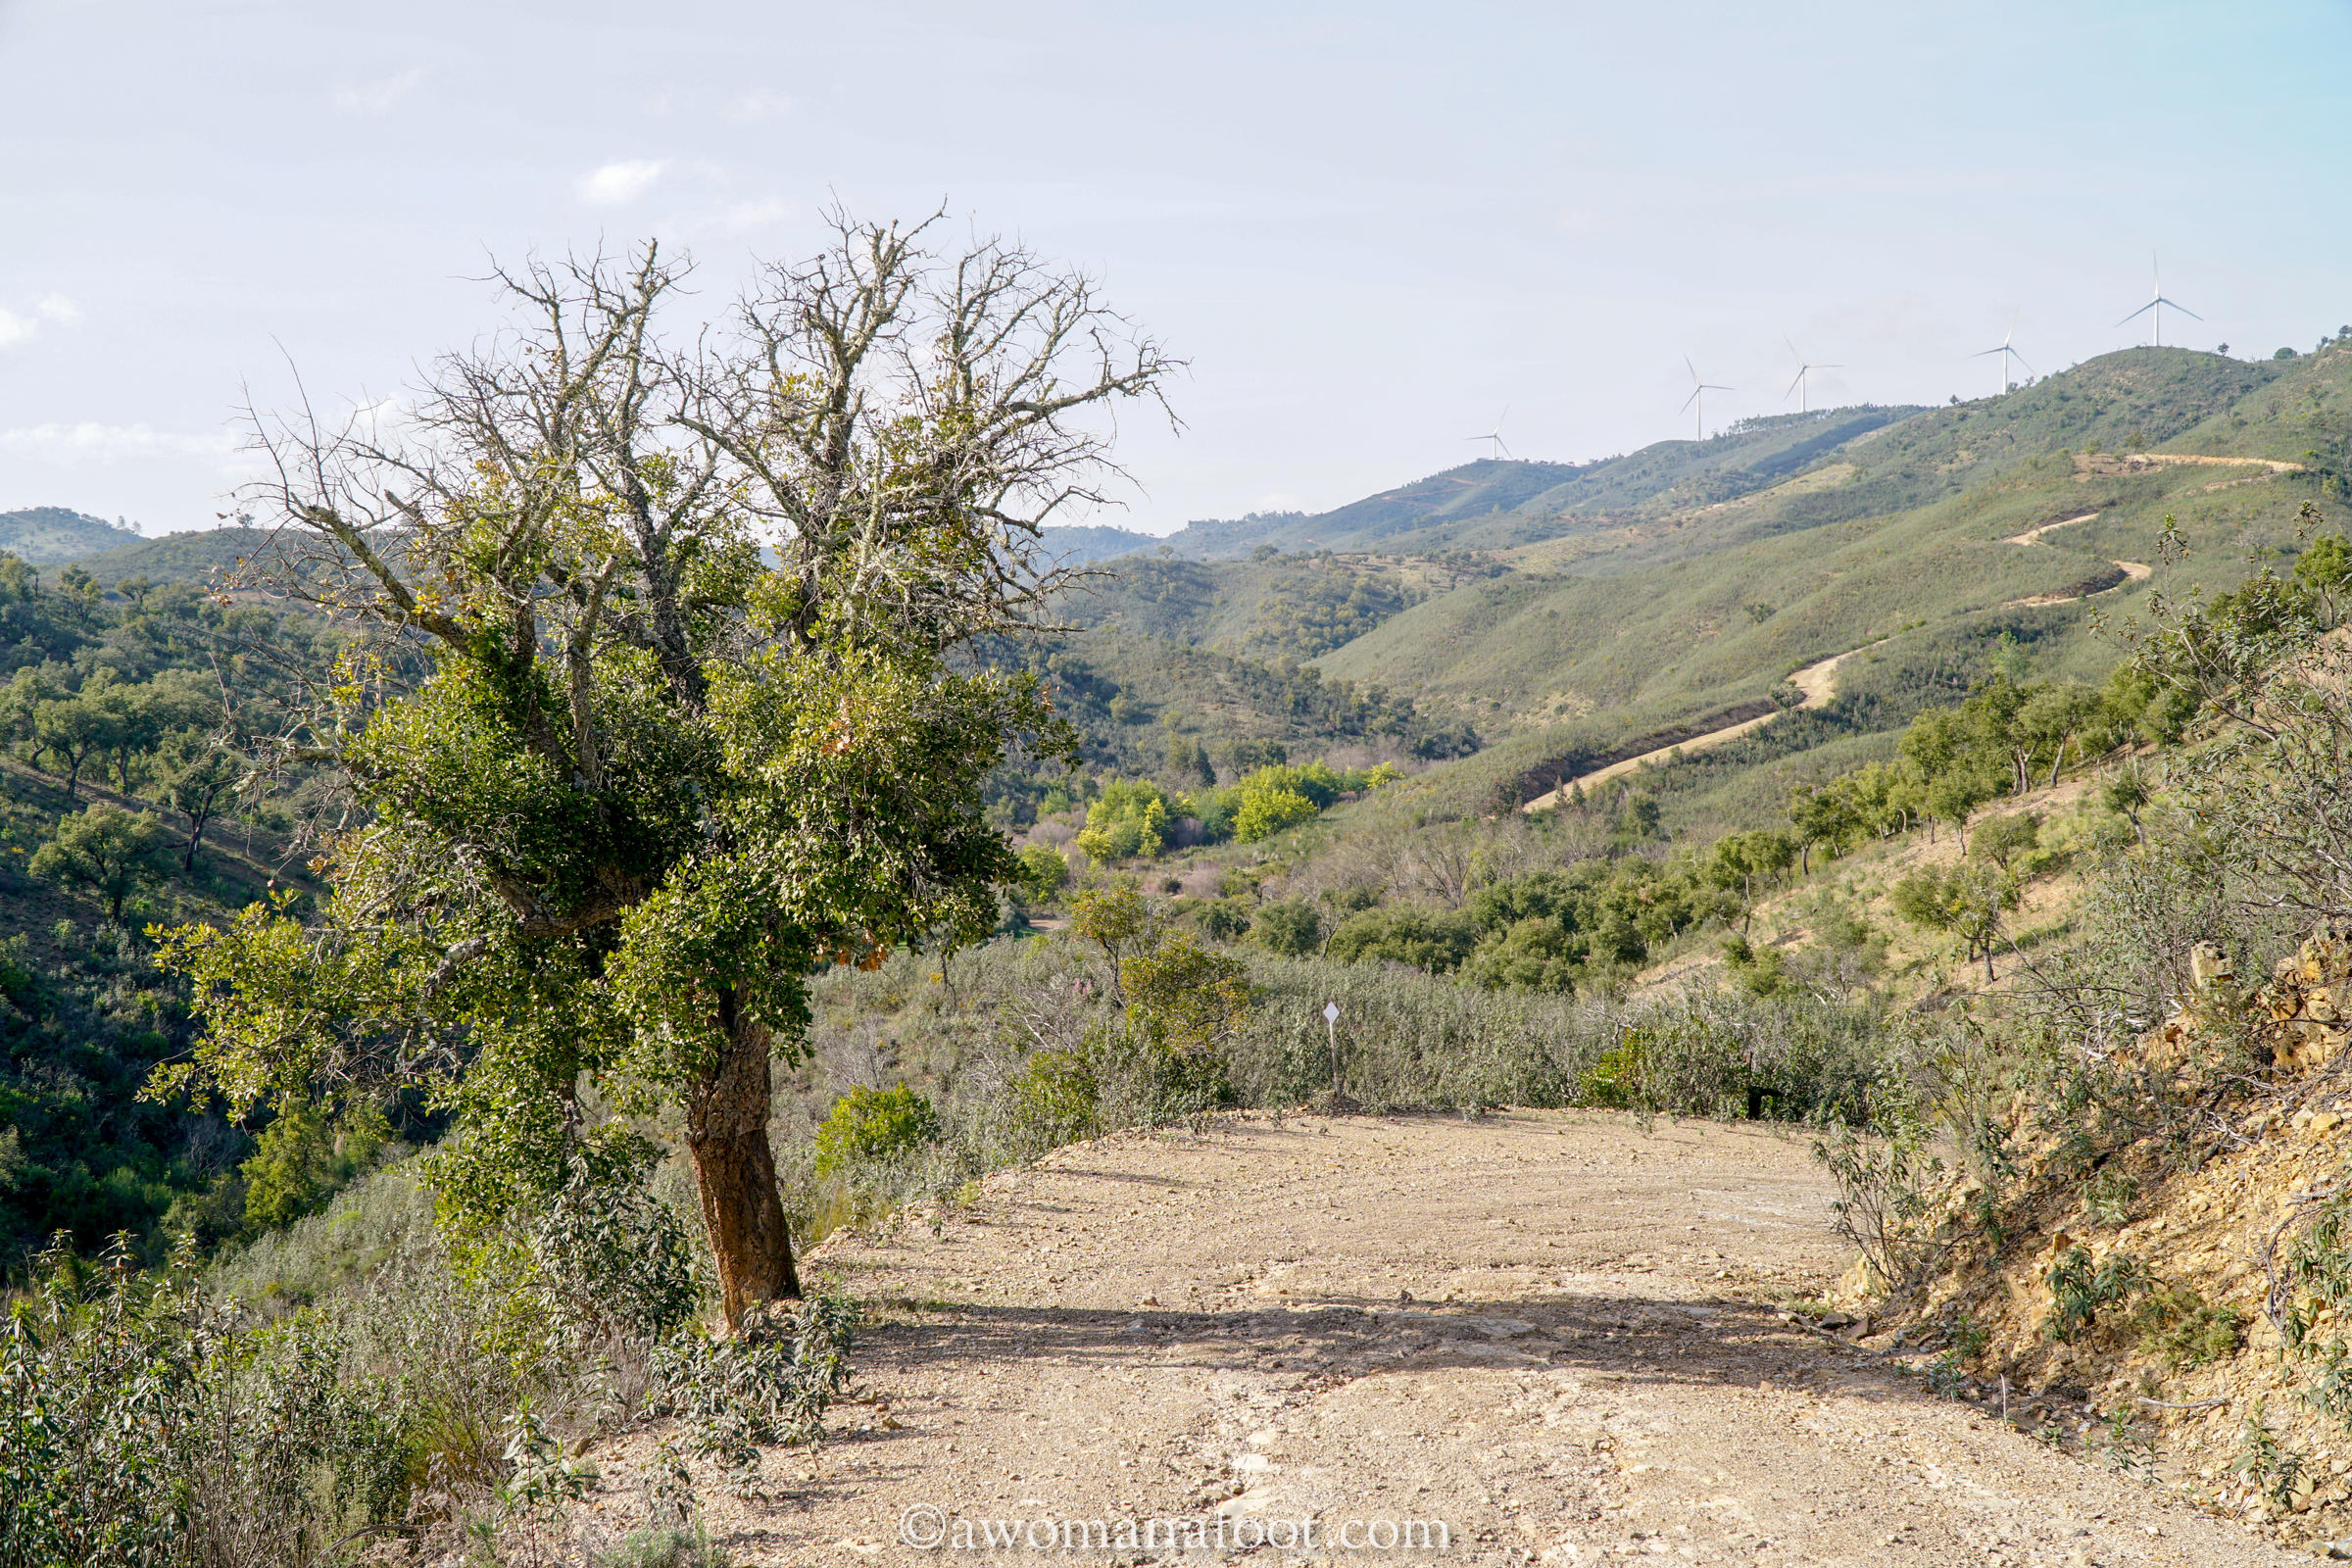 Hiking solo in Portugal on the Via Algarviana Trail! Click to read about the section from Vaqueiros, through Cachopo, to Barranco do Velho @awomanafoot.com. Active travel in Portugal | Hiking trails in Europe | Female solo hikers | Anxiety | What to do in Algarve | #Hiking #Portugal #Algarve #ViaAlgarviana #HikingSolo #Outdoors #Anxiety #Aspie #EuropeanTrail